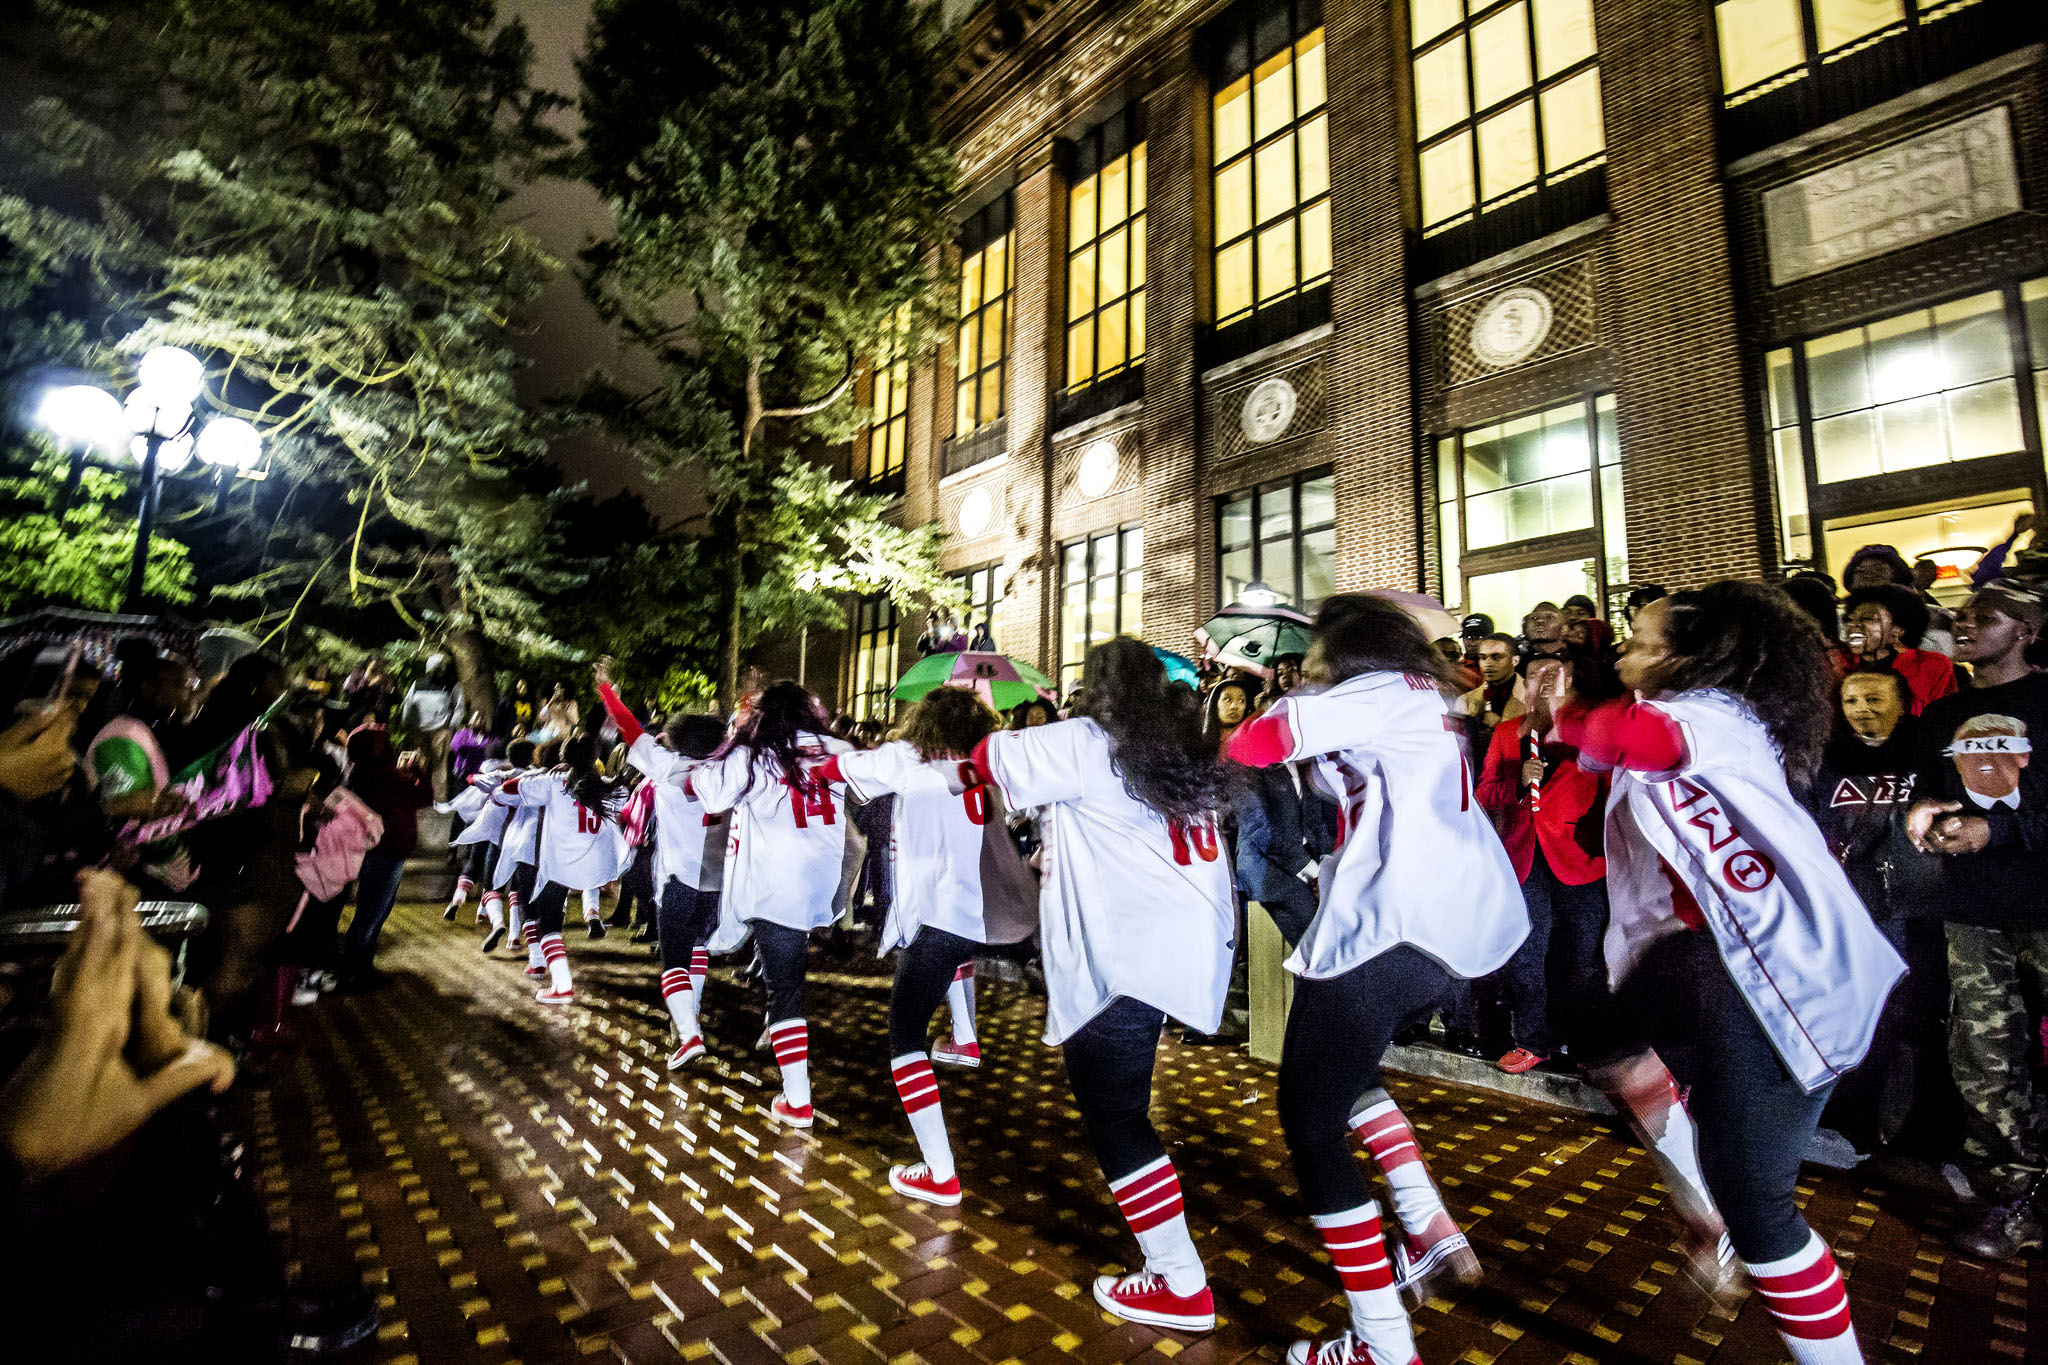 A photograph of a step performance on the Central Campus Diag.